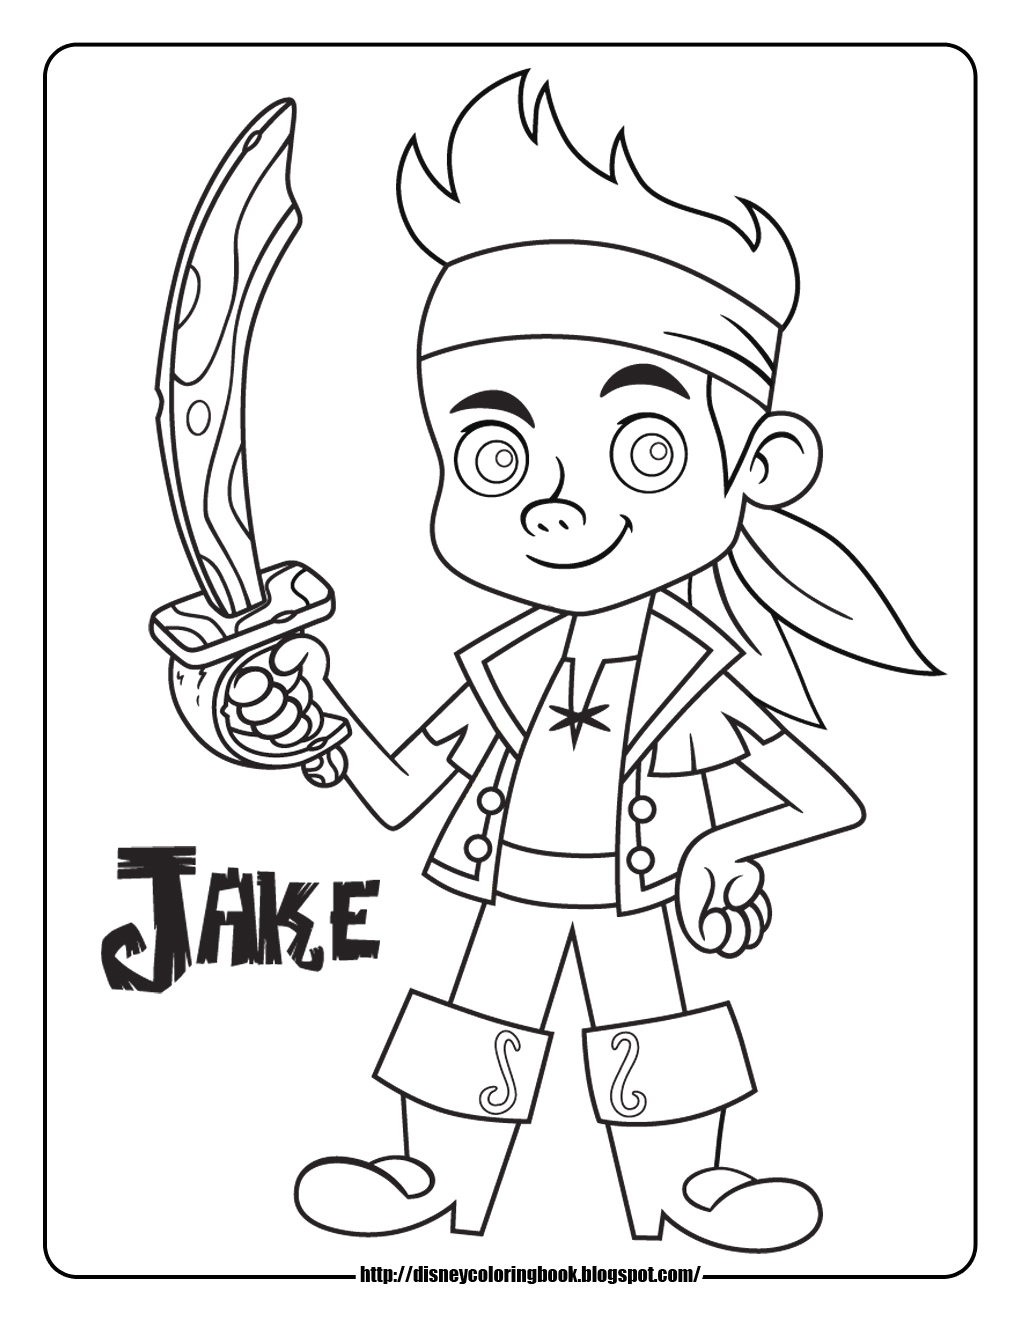 Jake and the Neverland Pirates Coloring Pages to Print Jake and the Neverland Pirates 1 Free Disney Coloring